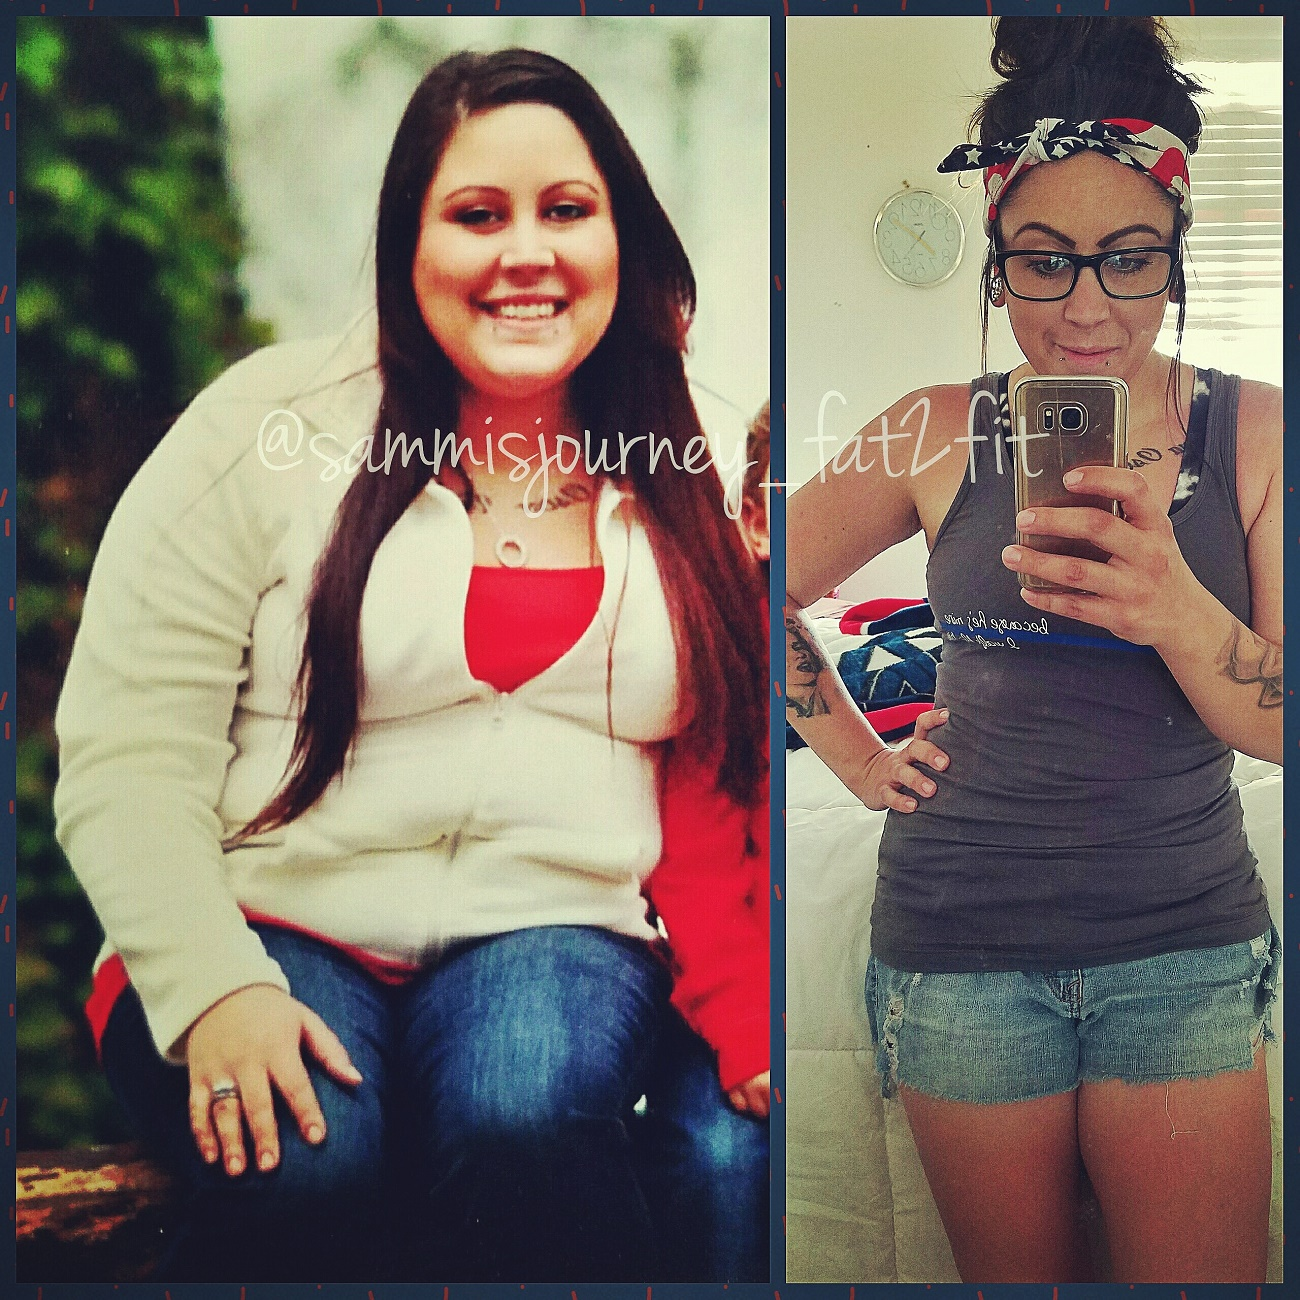 60 Pounds Lost: Sammi Drops Weight And Finds Herself - Vegan